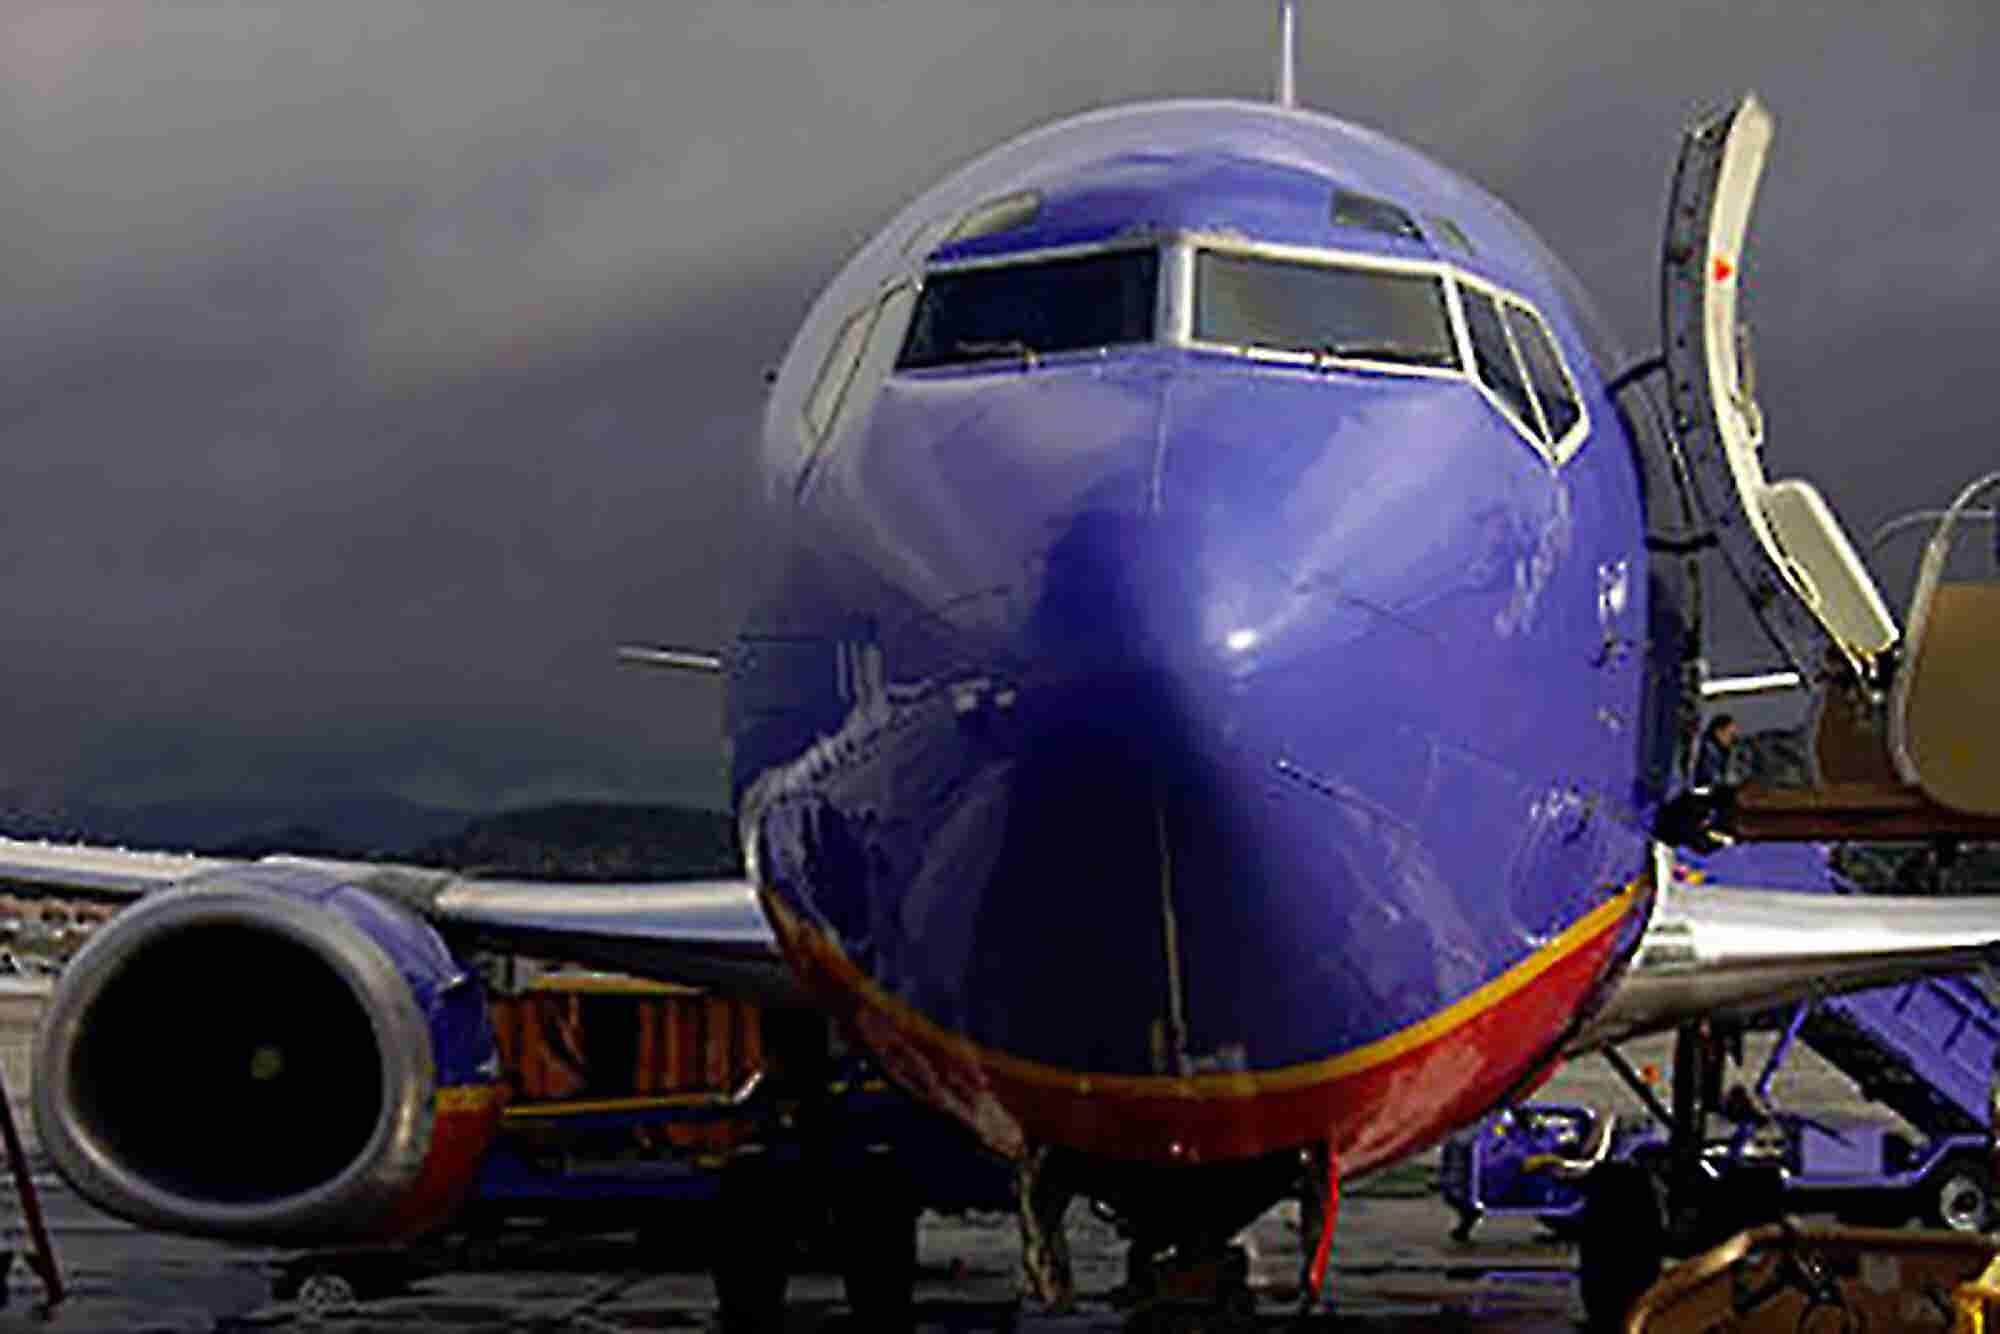 WATCH: Southwest Flight Attendant Delivers Hilarious Safety Announcement